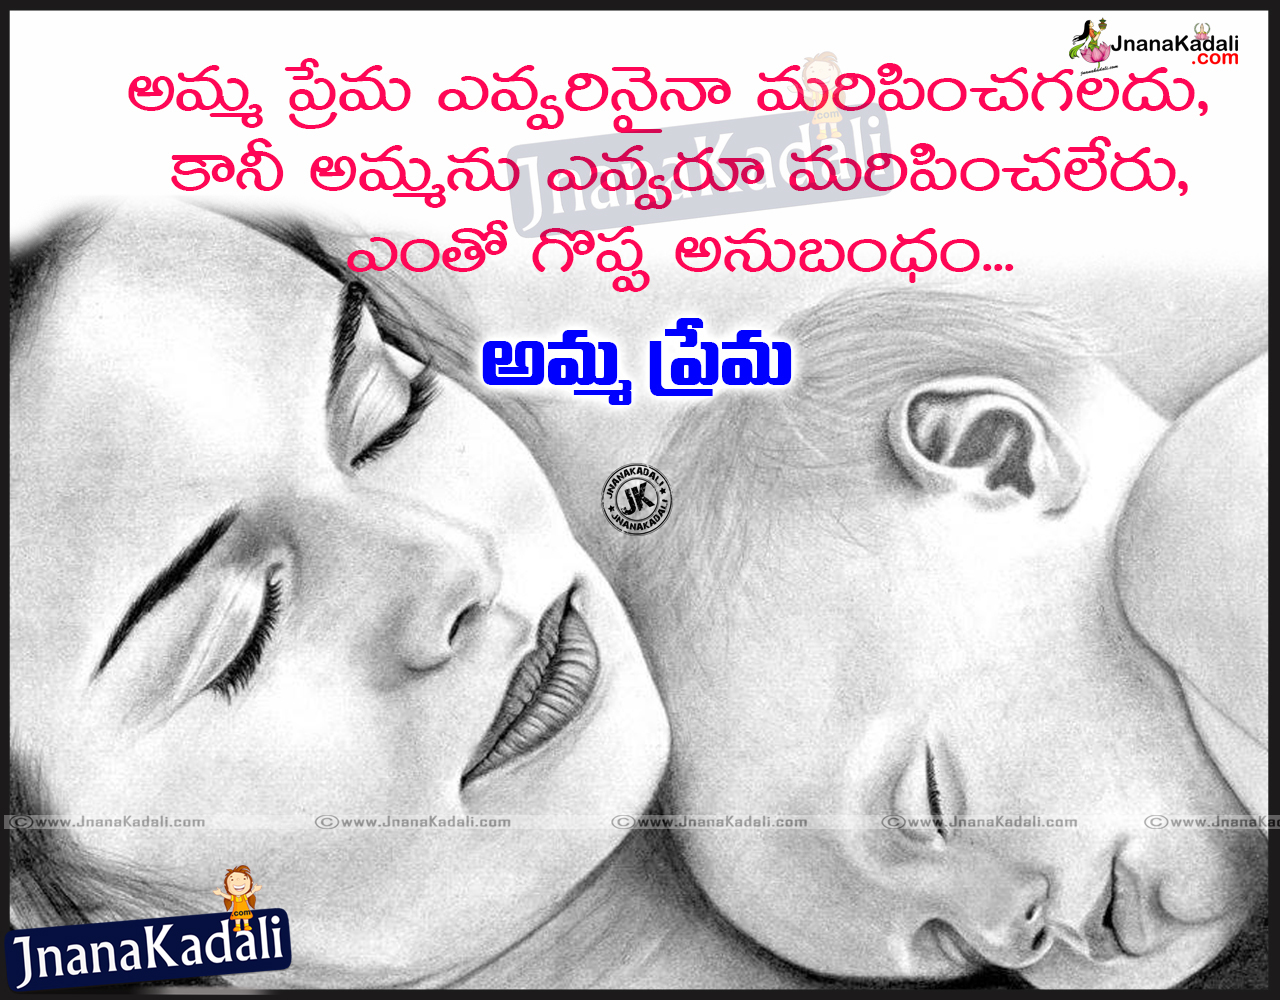 Mother Love Quotes Telugu Mother Love Vs Father Love Quotes & Sayings Images  Jnana